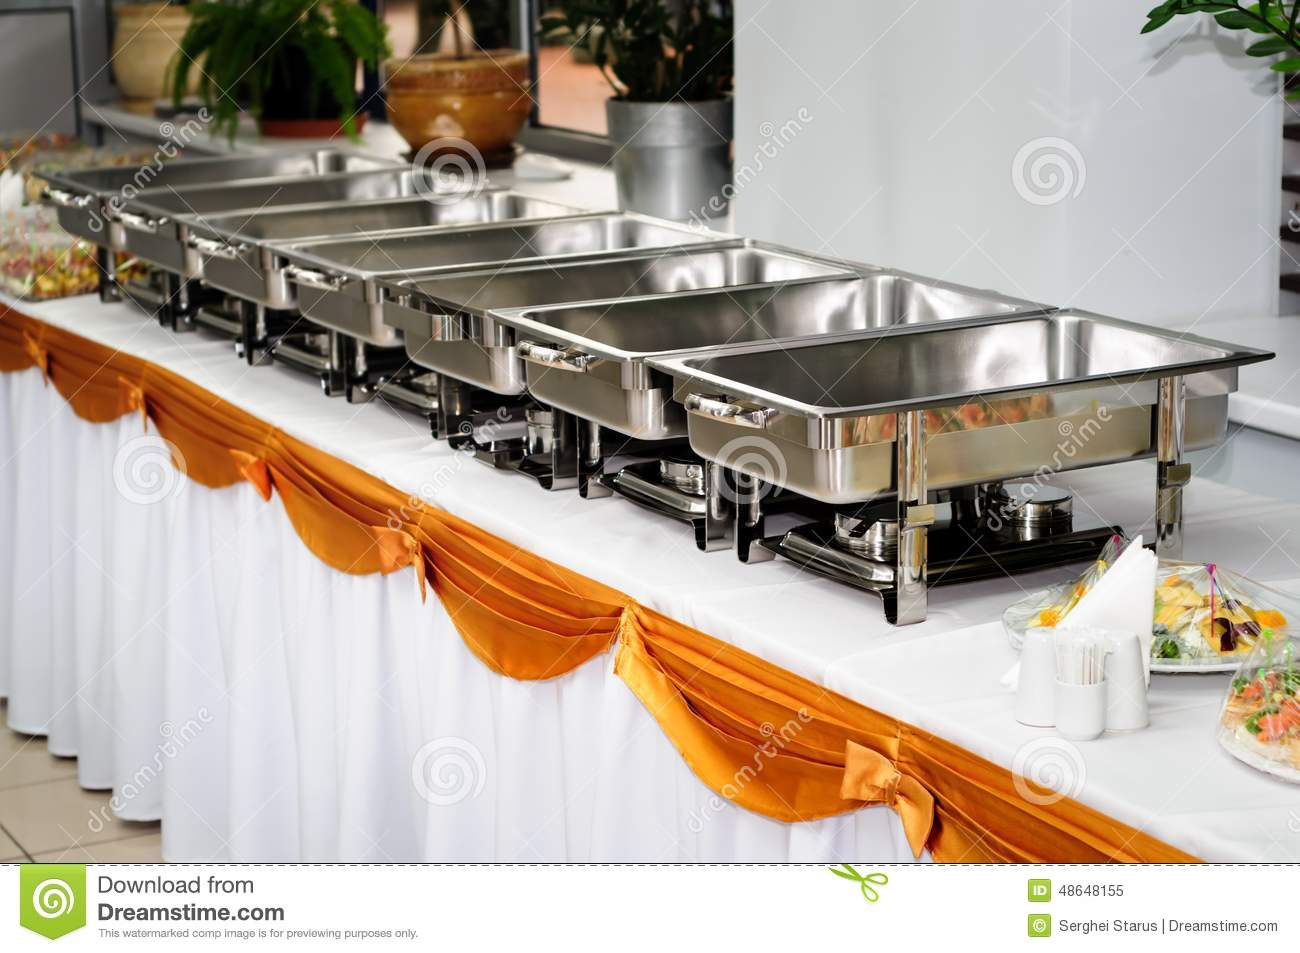 Wedding stock image of. Catering clipart food served image